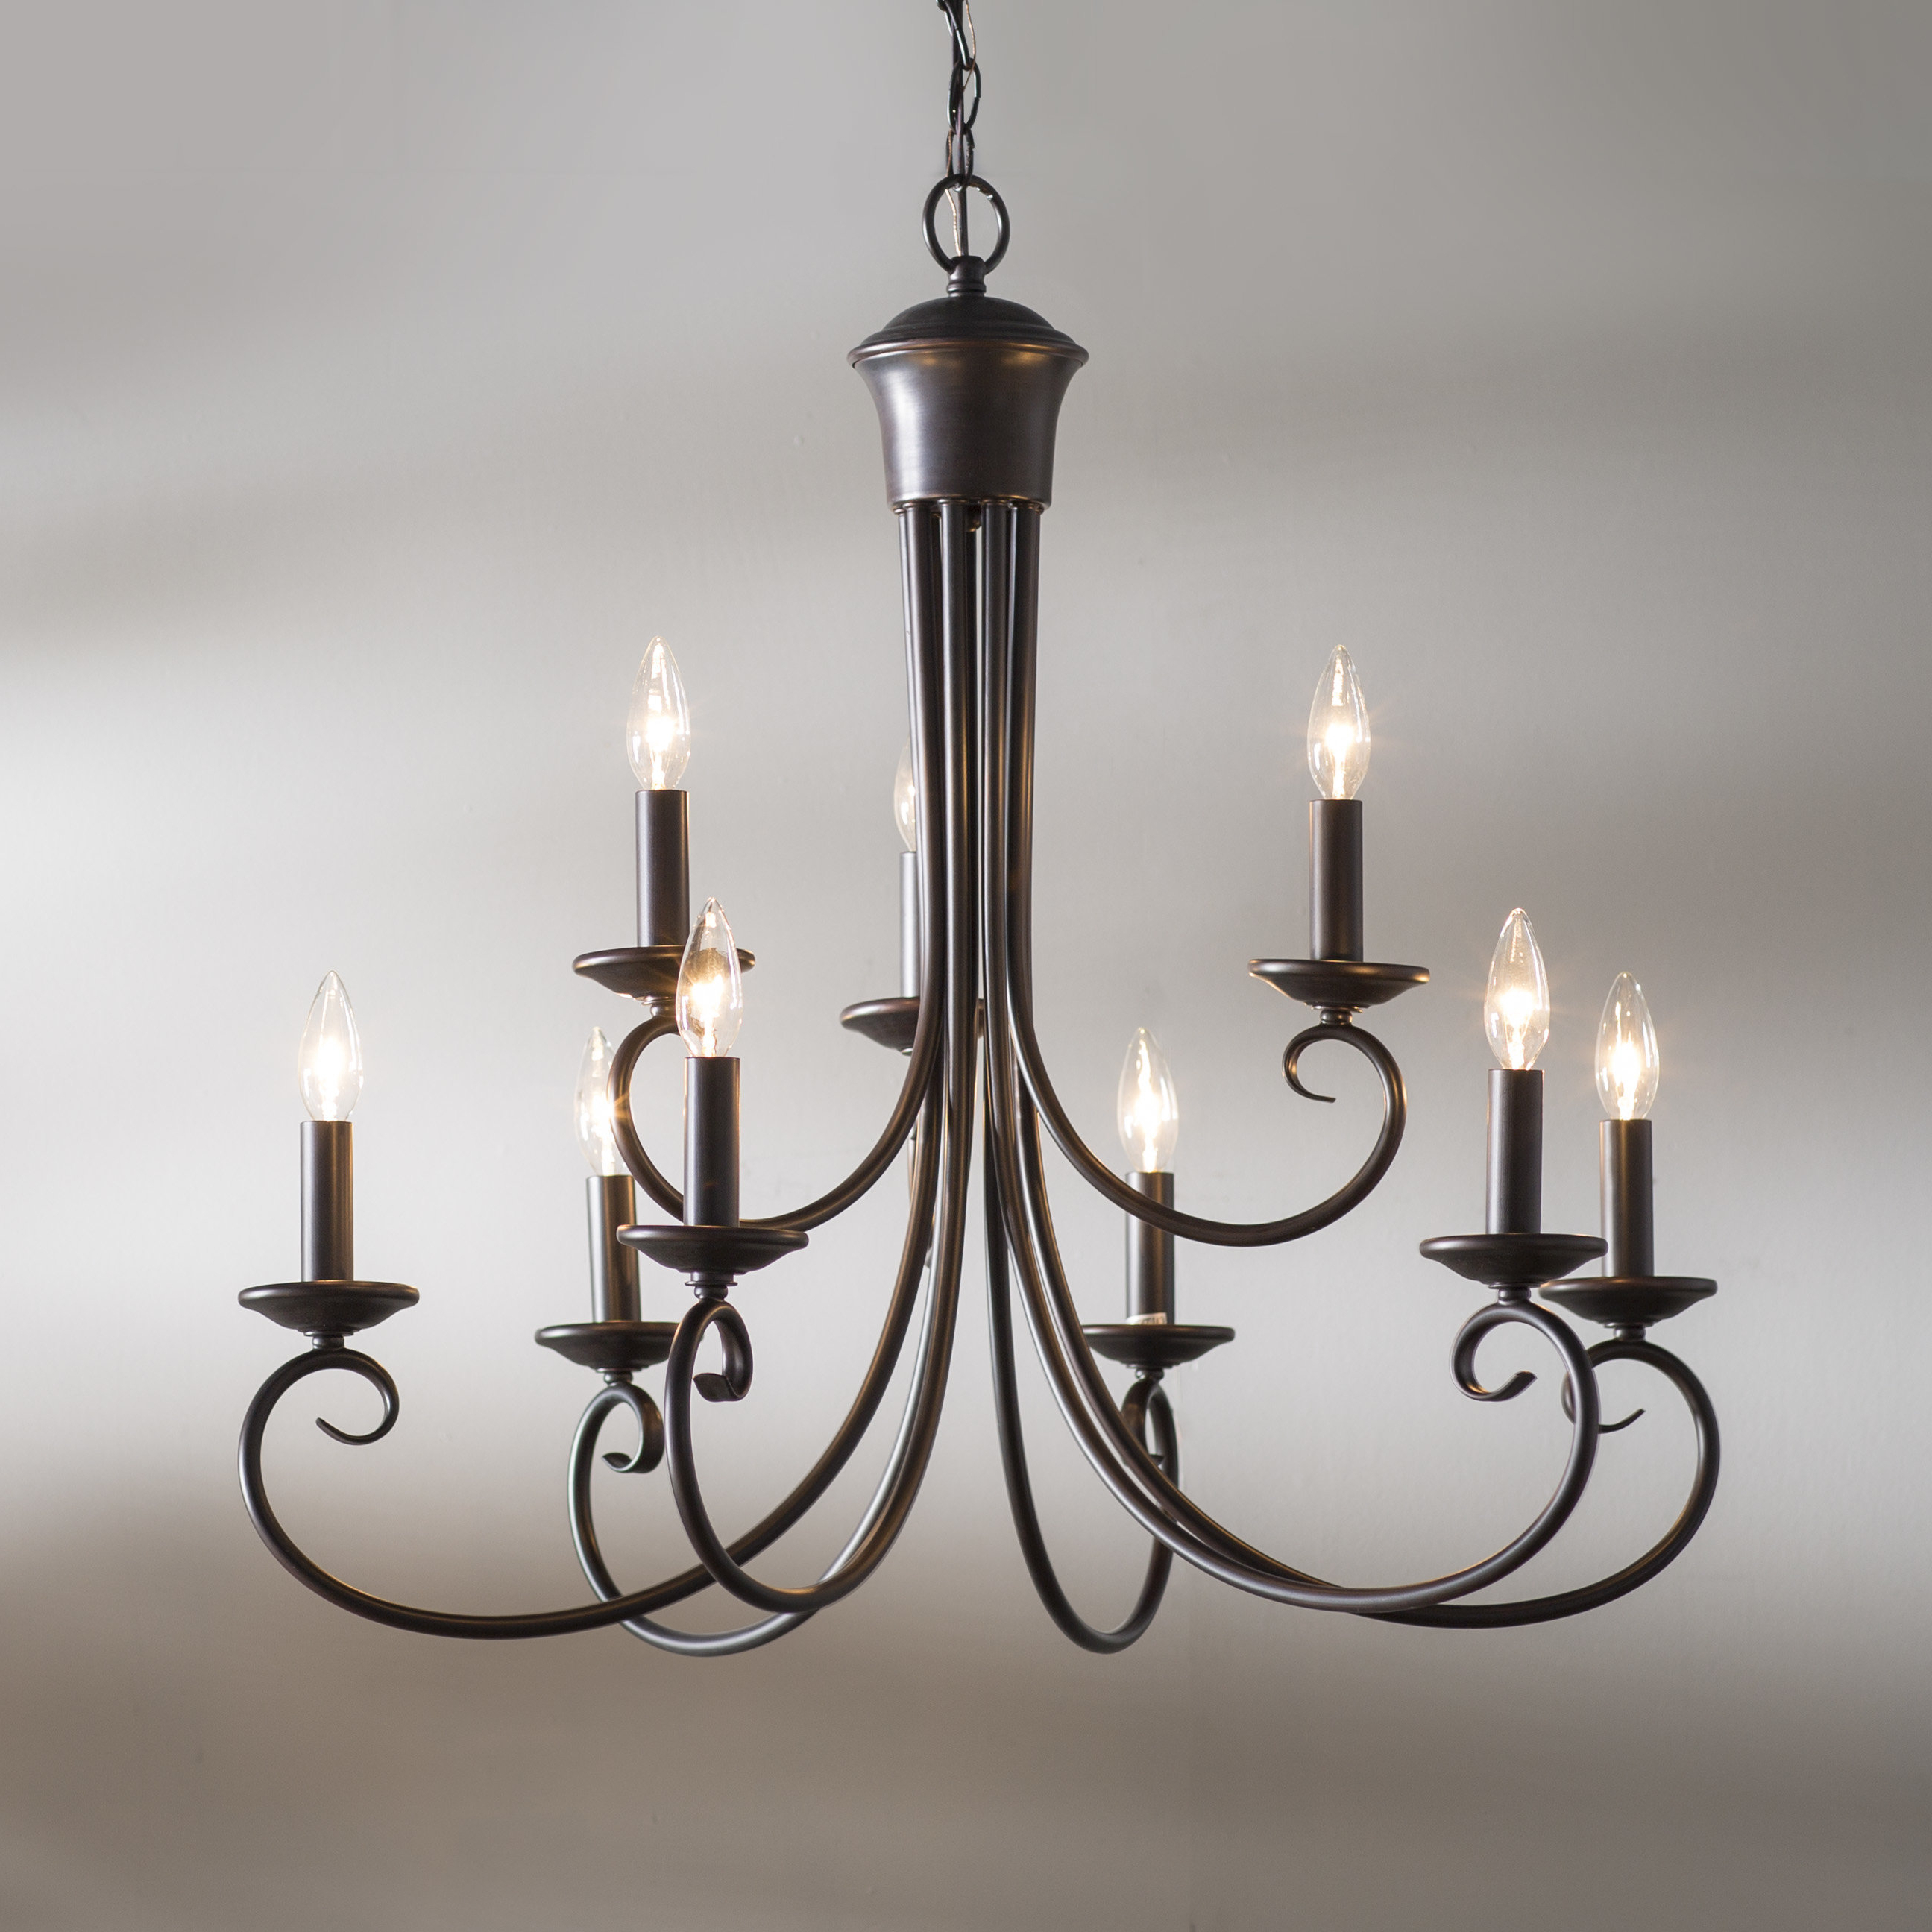 Well Liked Kenedy 9 Light Candle Style Chandelier With Gaines 9 Light Candle Style Chandeliers (View 24 of 25)